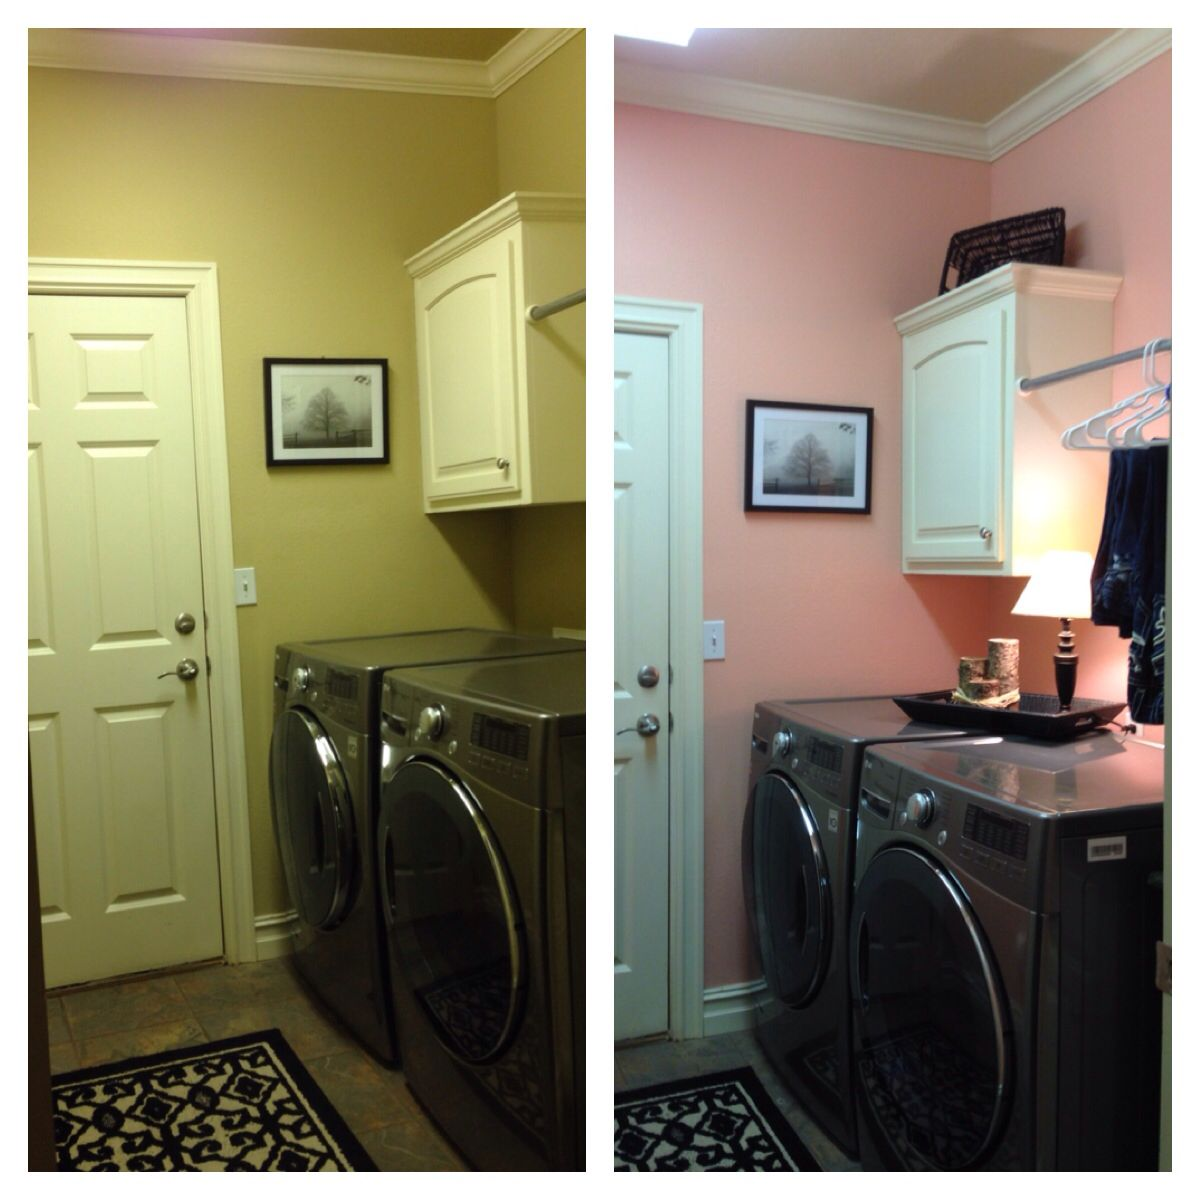 Bright Pink Paint Samples Kitchen Towels: Sherwin Williams Jovial On Walls. A Light Coral/pink Tone